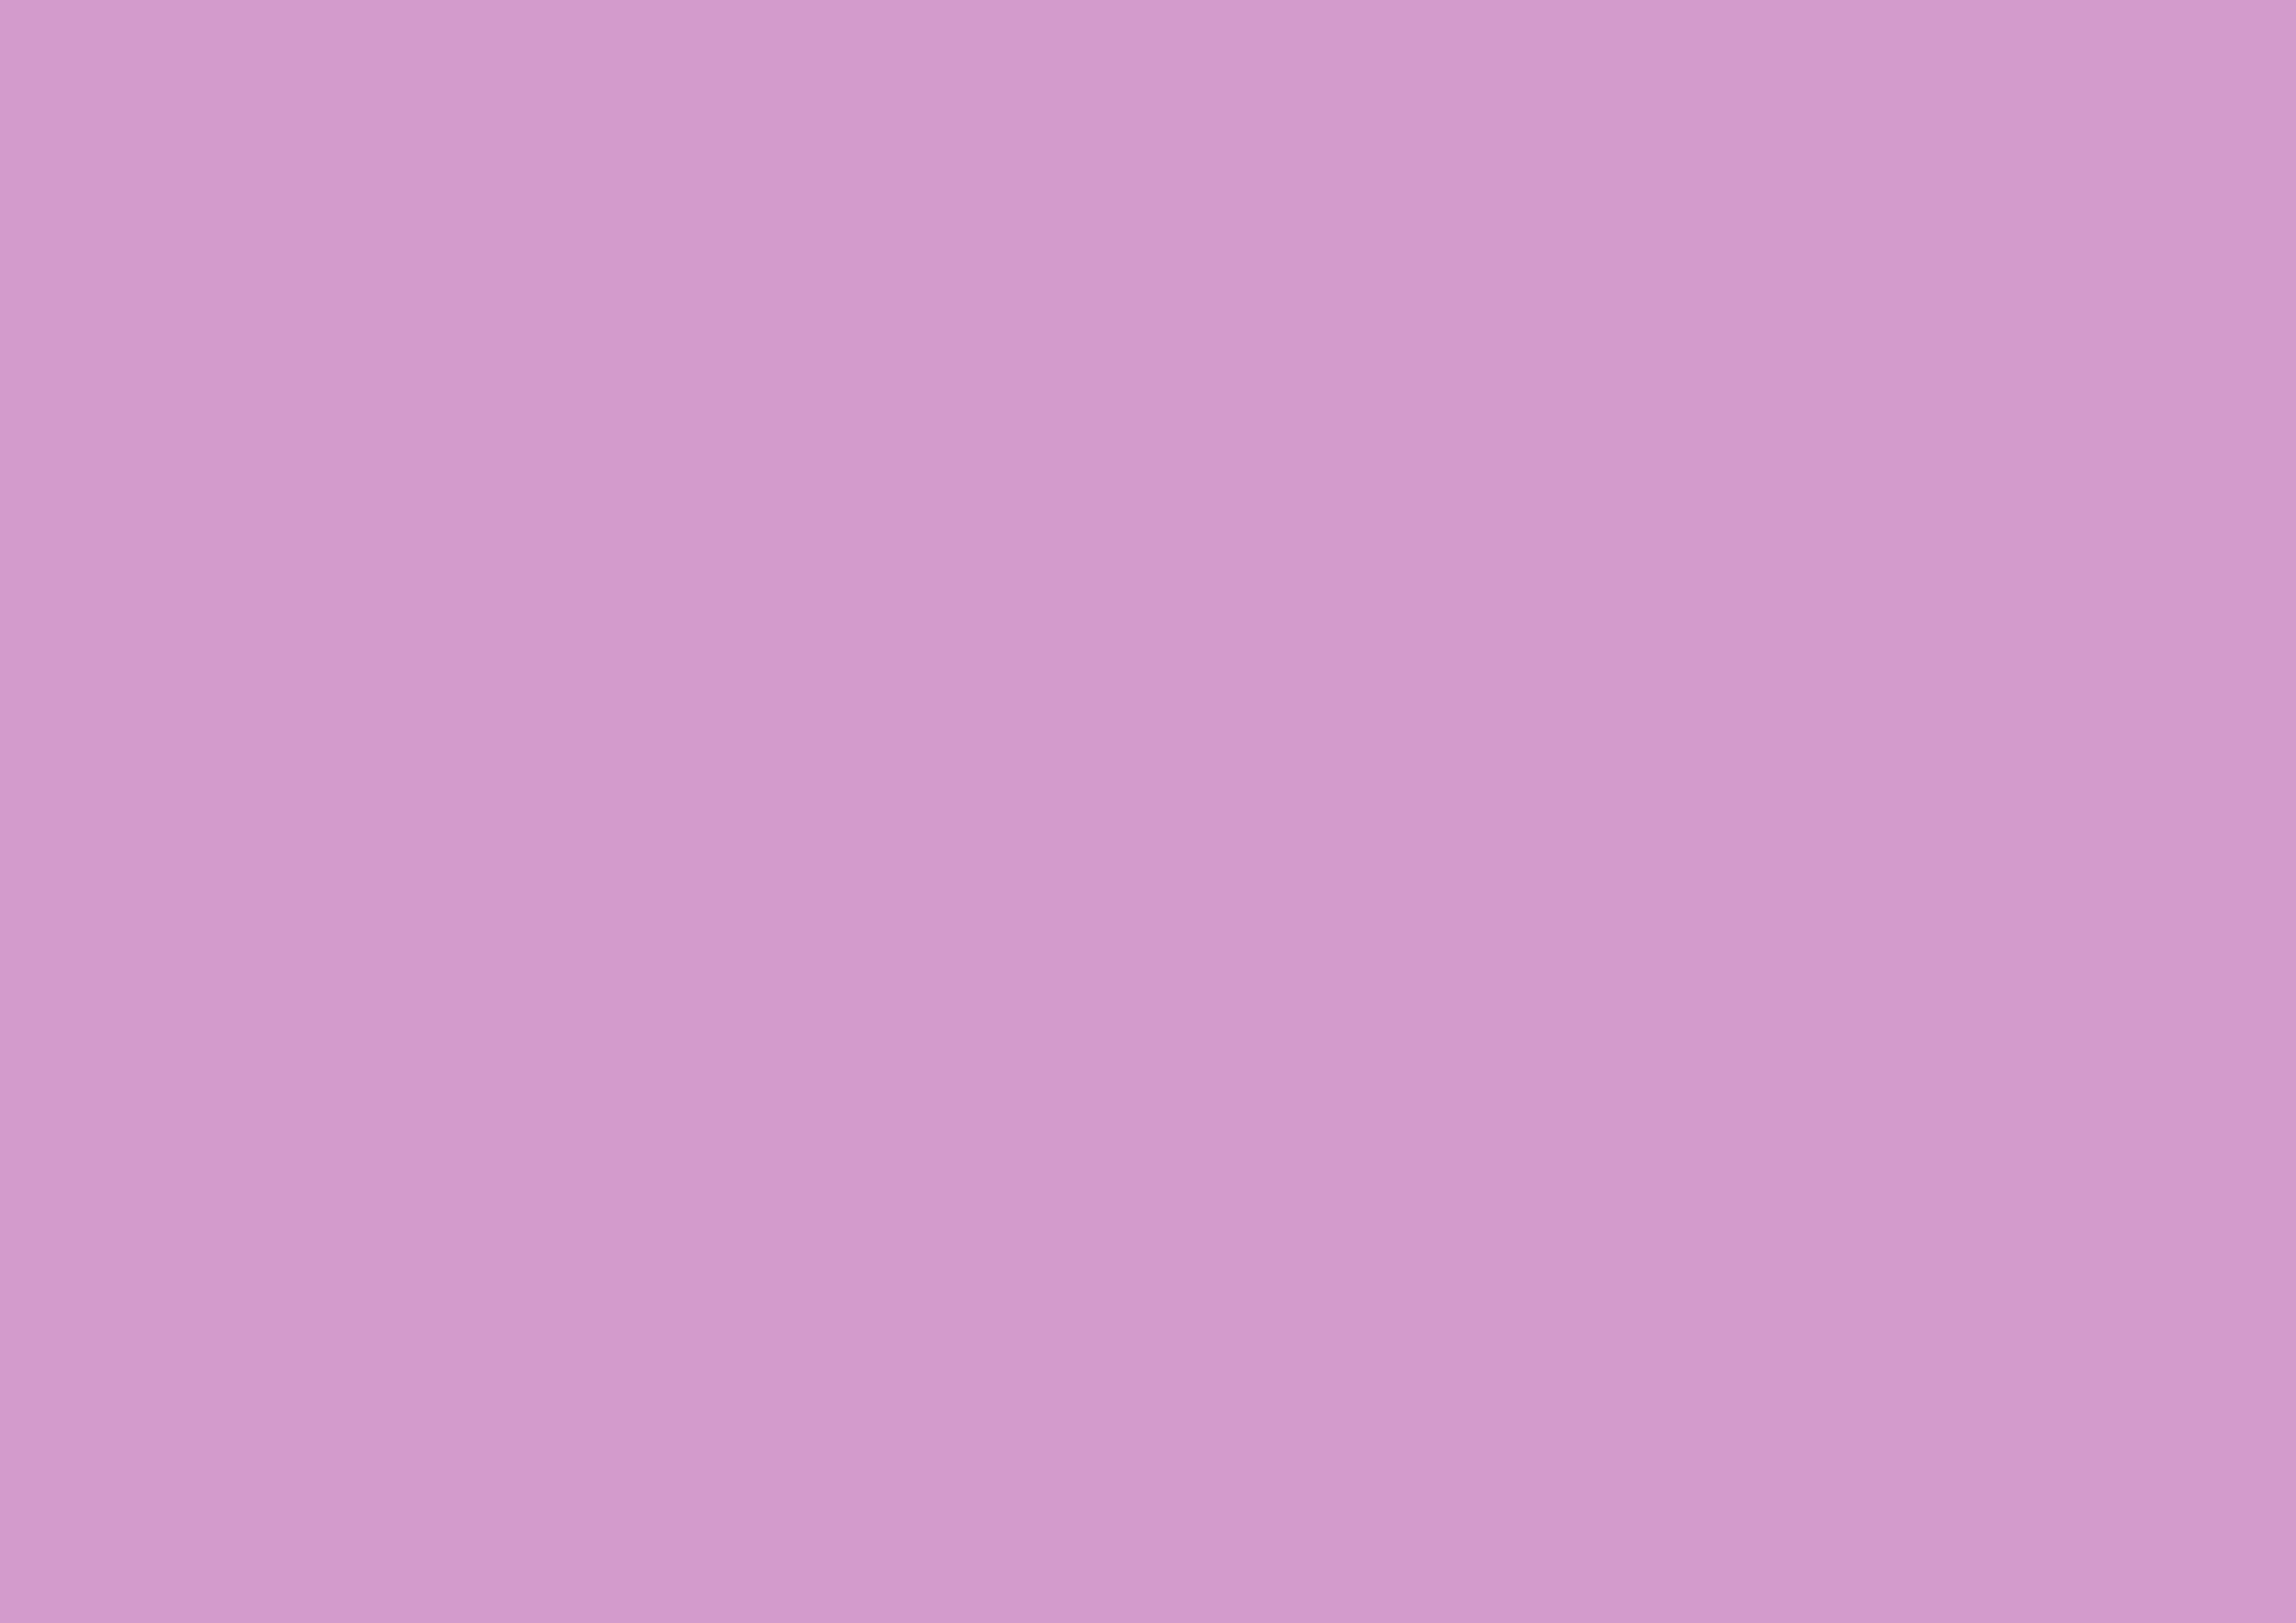 3508x2480 Light Medium Orchid Solid Color Background